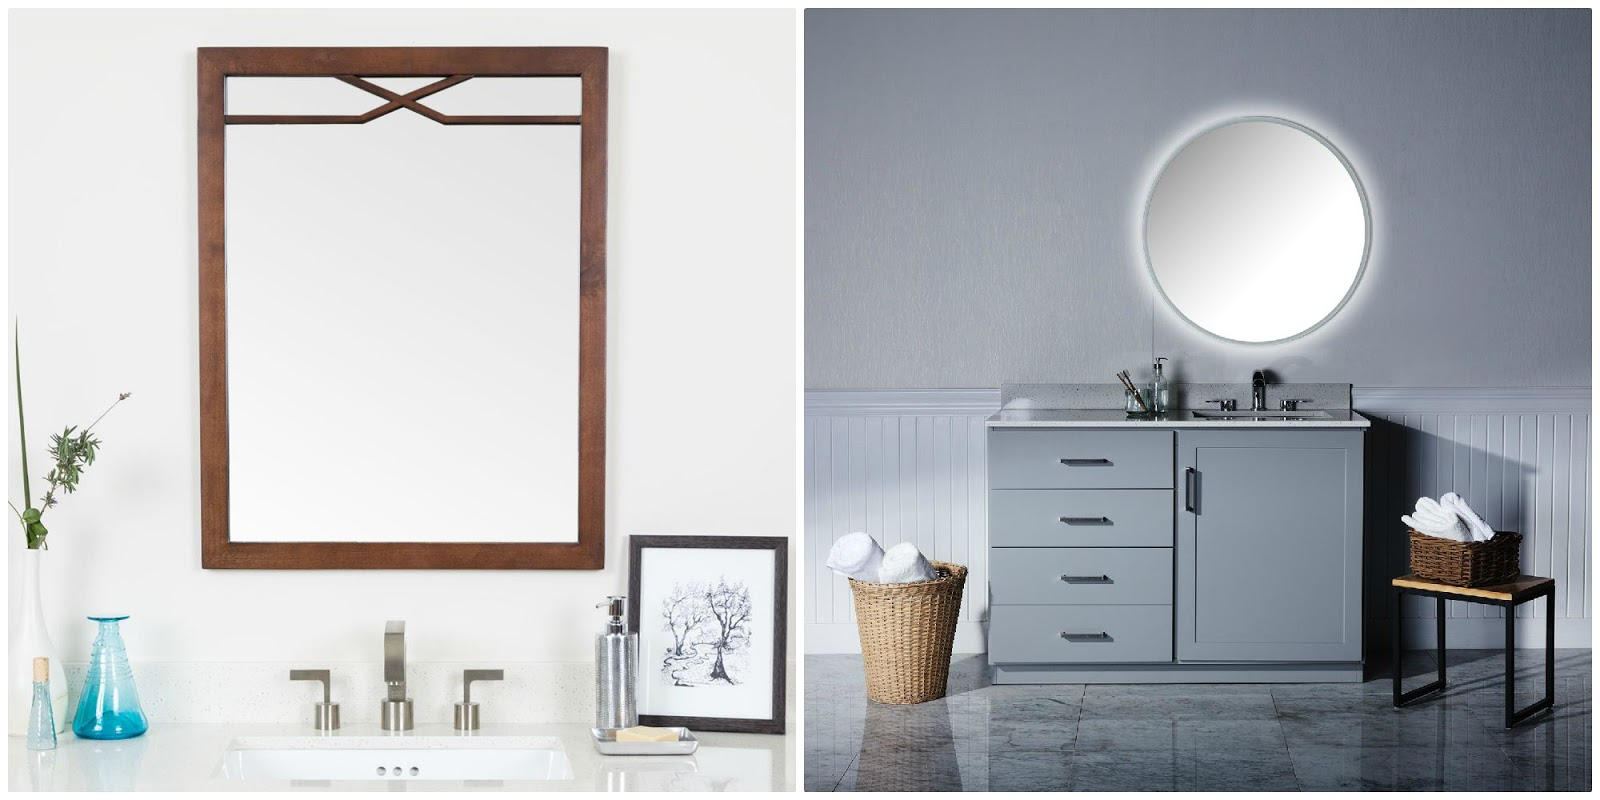 Unique Framed Wall Mirror Round LED Mirror